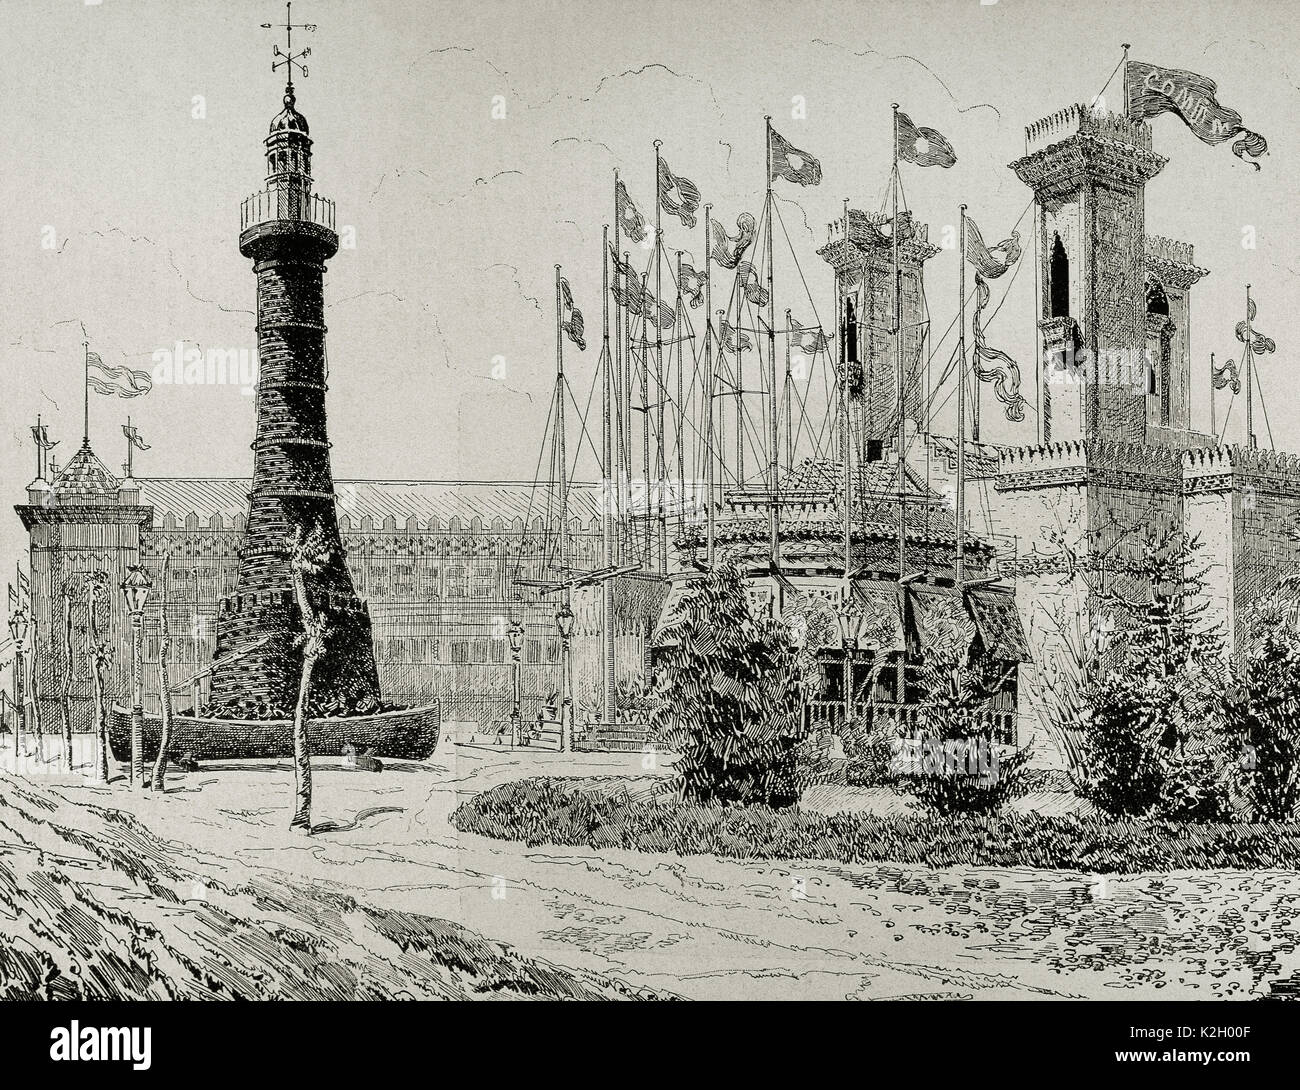 Spain. Catalonia. 1888 Barcelona Universal Exposition. Gallery of maritime installations: stone charcoal lighthouse and the pavilion of 'La Trasatlantica' Company. Engraving. 'La Ilustracion Iberica', 1888. - Stock Image